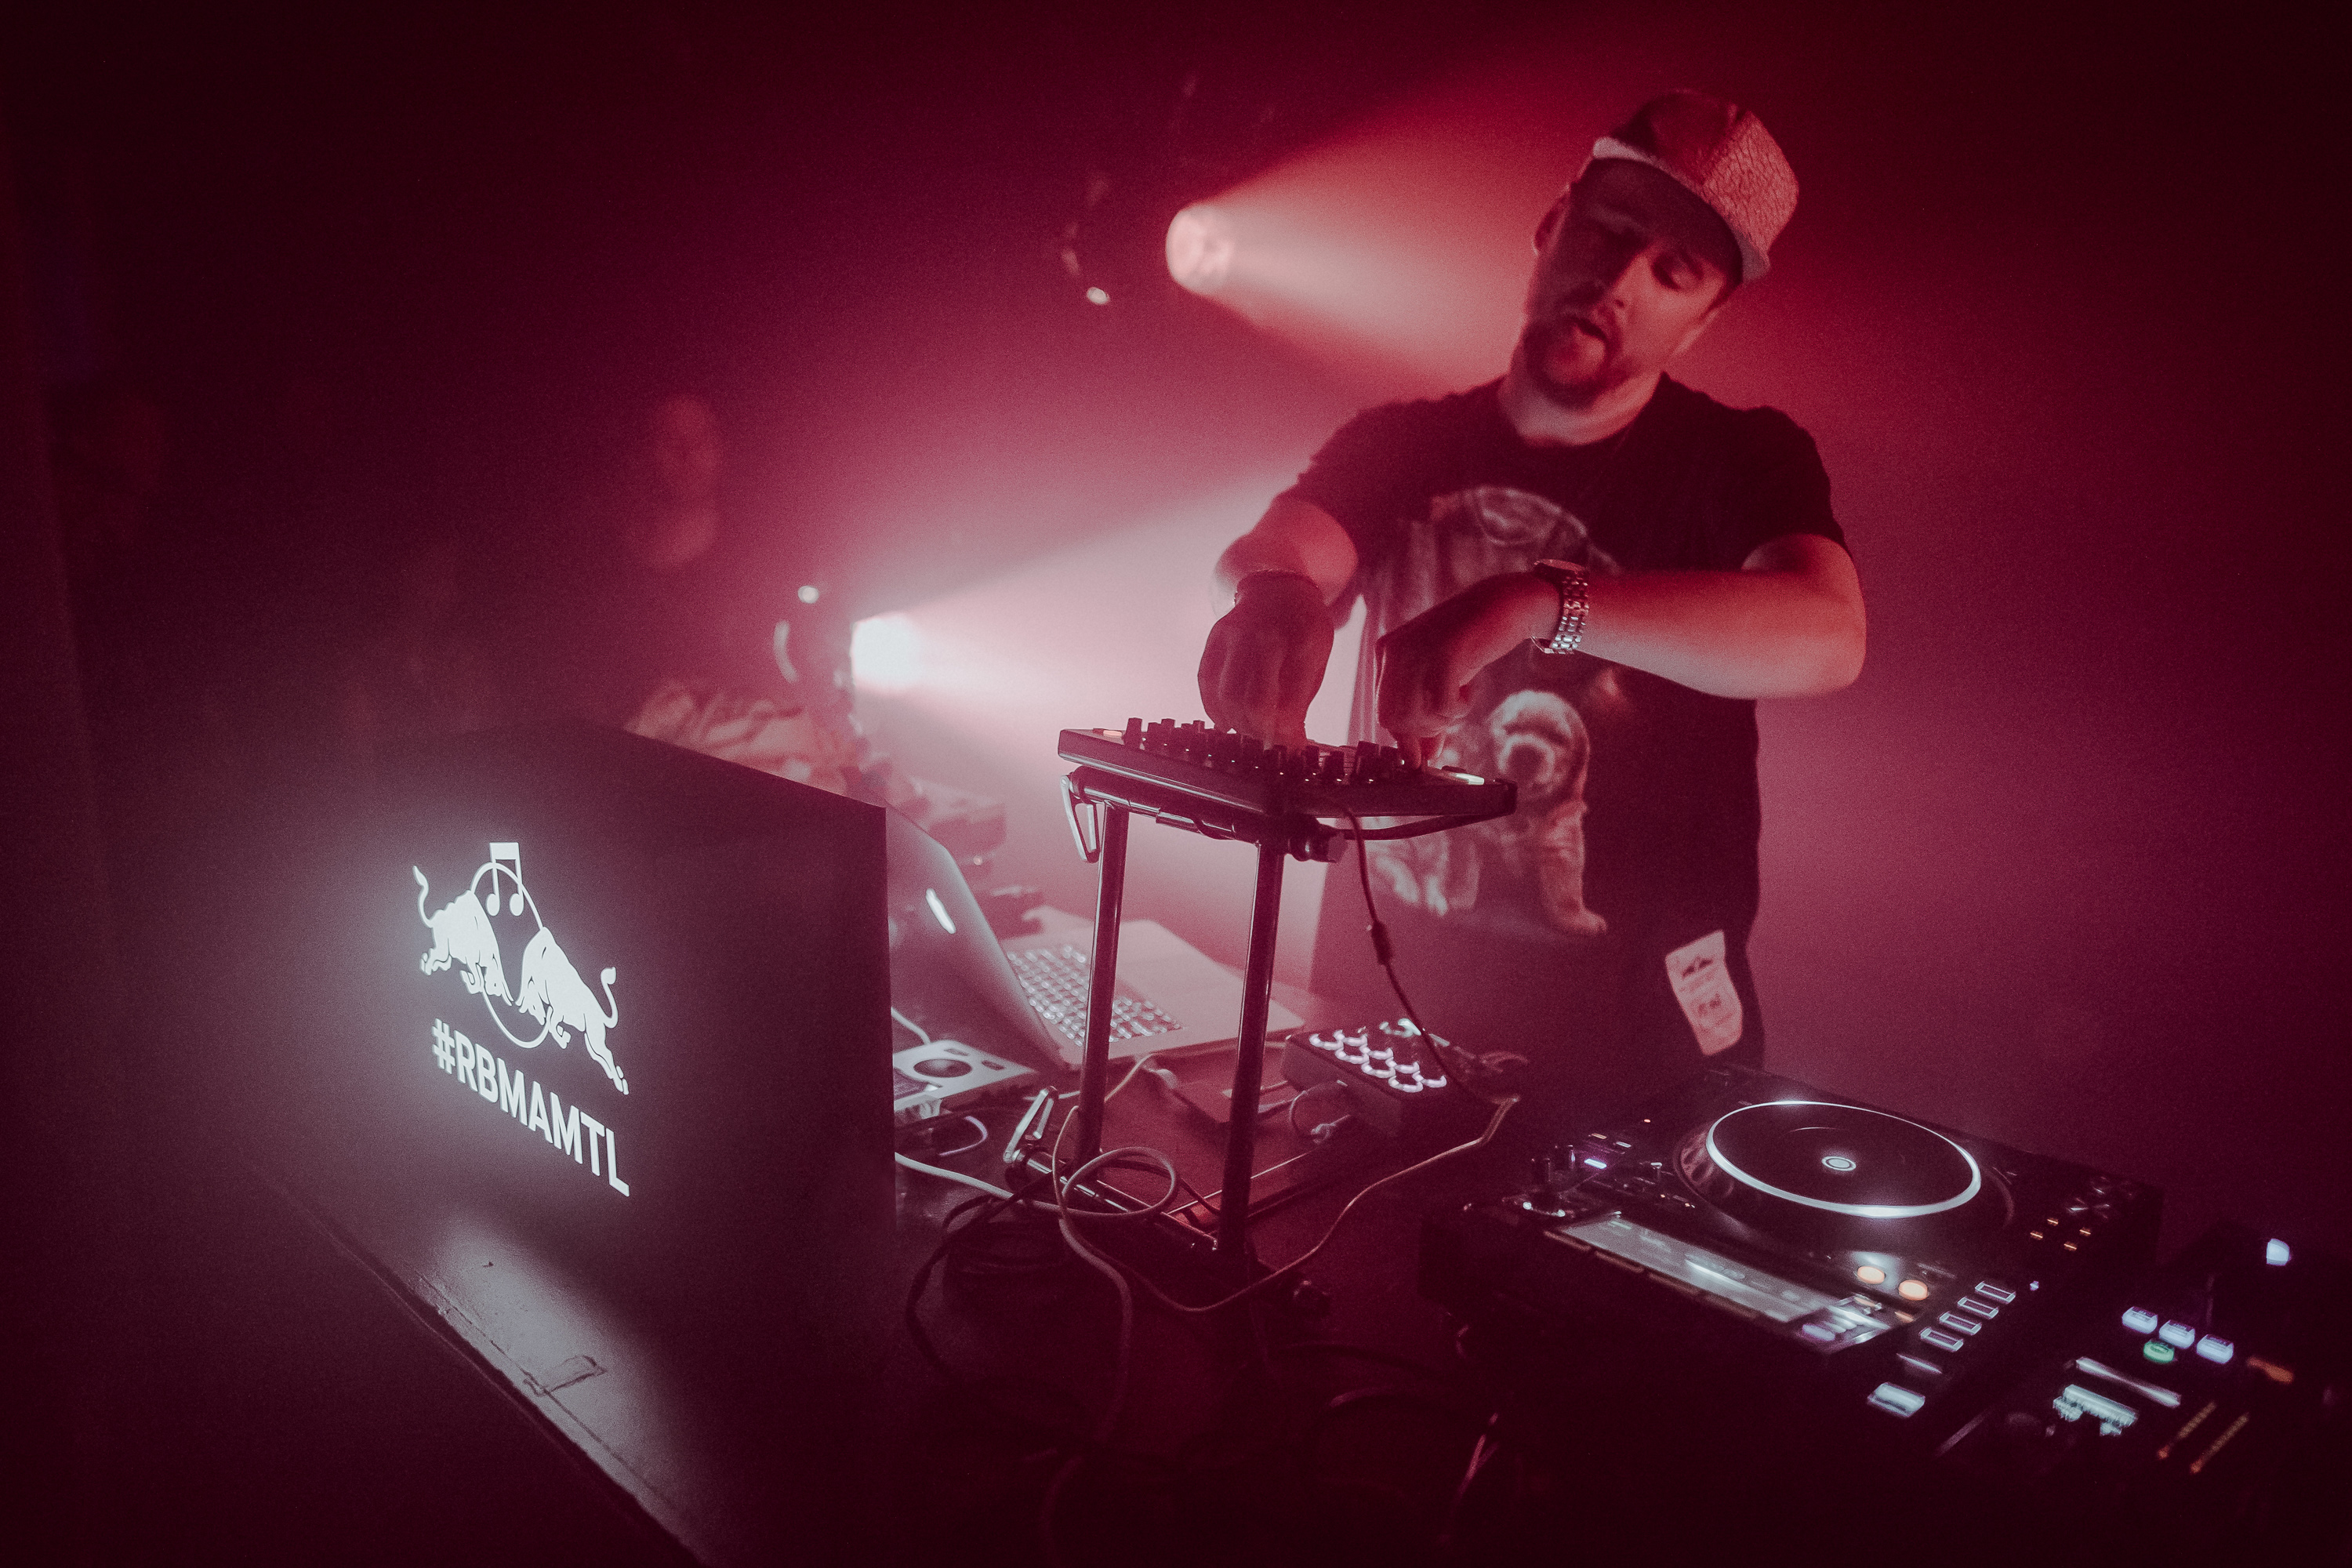 Machinedrum performs at Turbo Crunk during the Red Bull Music Academy in Montreal, September 24 to October 28, 2016